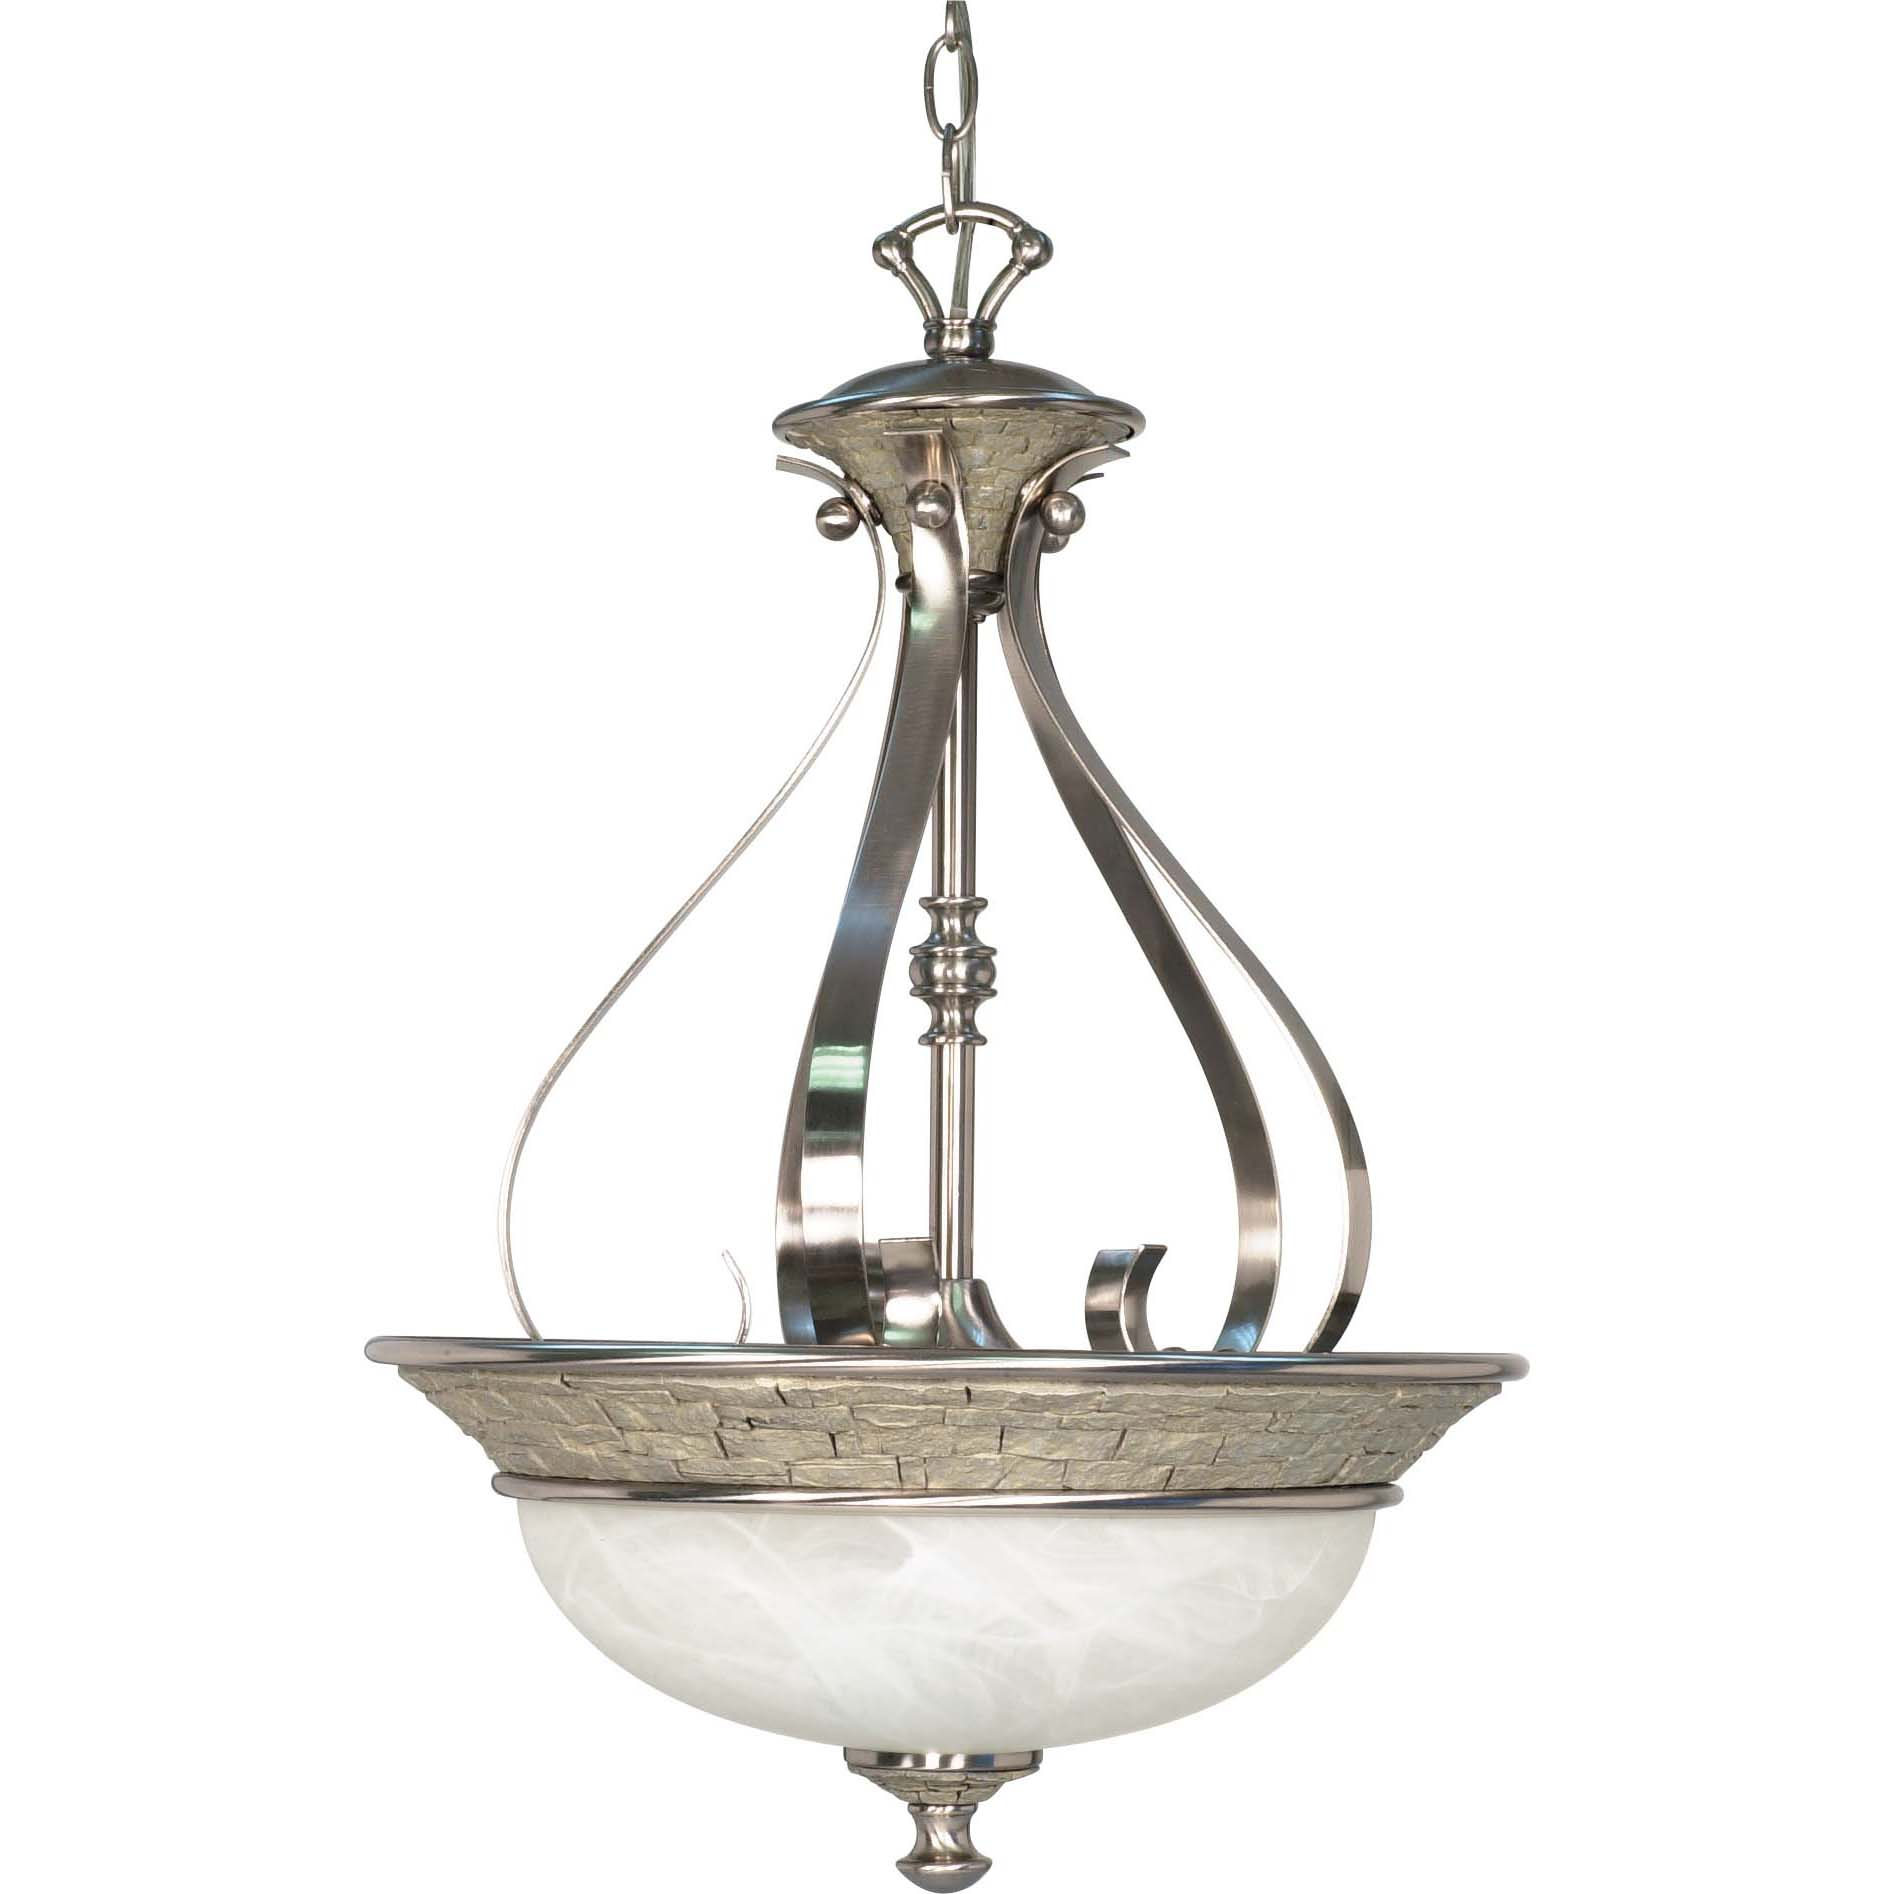 Rockport Milano Brushed Nickel Alabaster Glass 3-light Pendant Fixture - Thumbnail 0